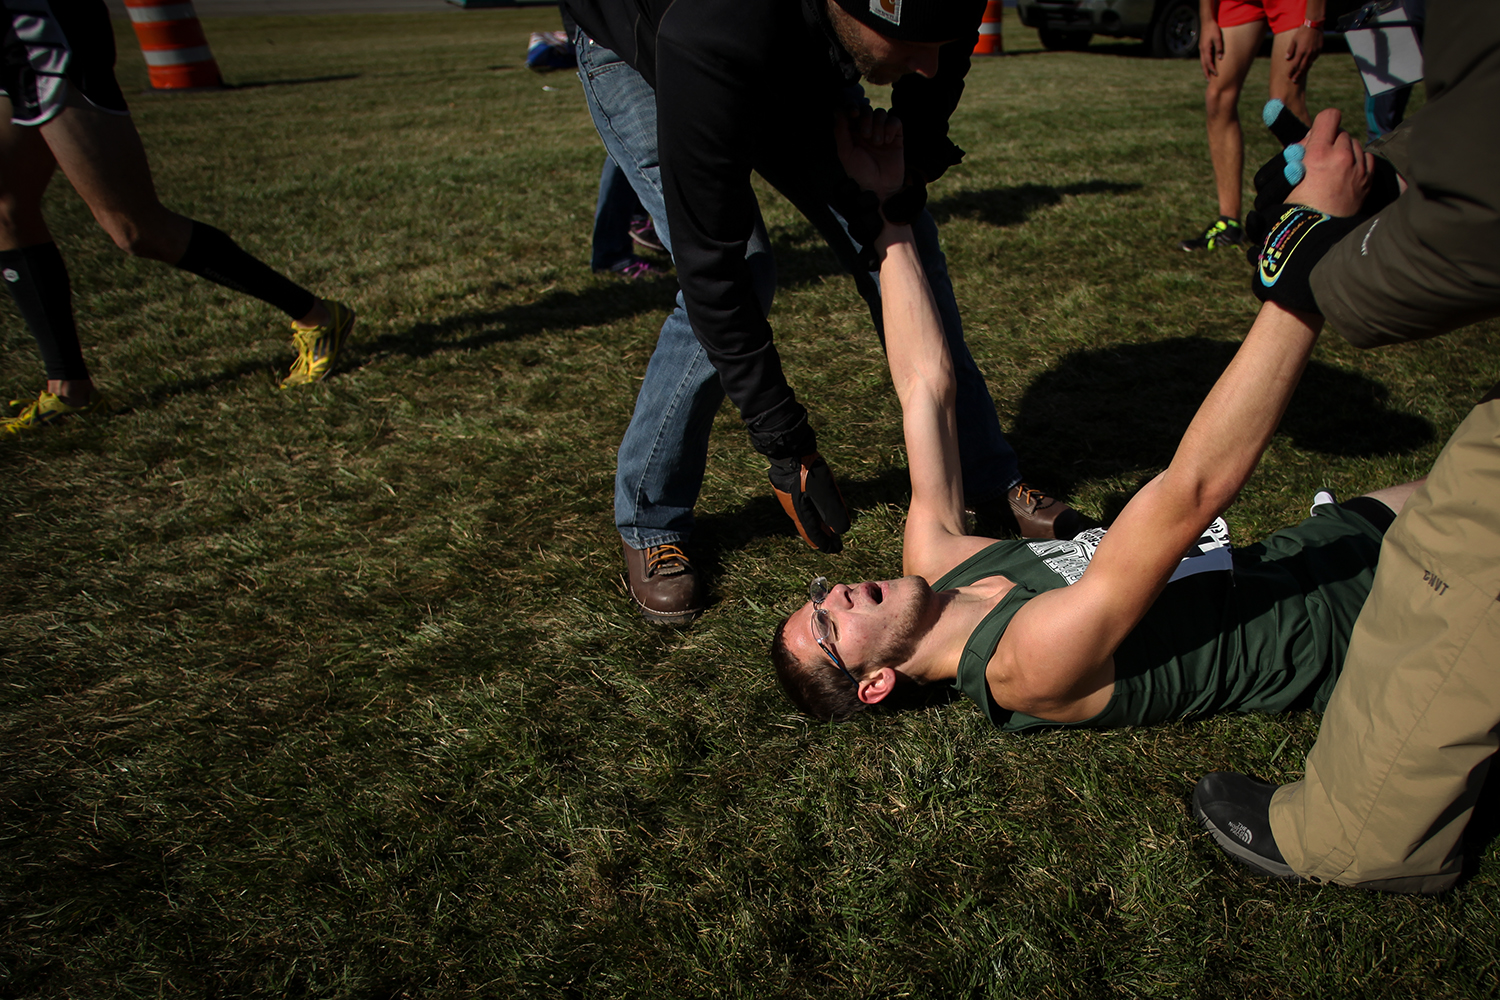 Freeland's Alex Stowell (Senior) is helped off the ground after completing the race at the 2014 Lower Peninsula Cross Country Division 2 Championship on Saturday, Nov. 1, 2014 at the Michigan International Speedway in Brooklyn. Tim Galloway/Special to DFP